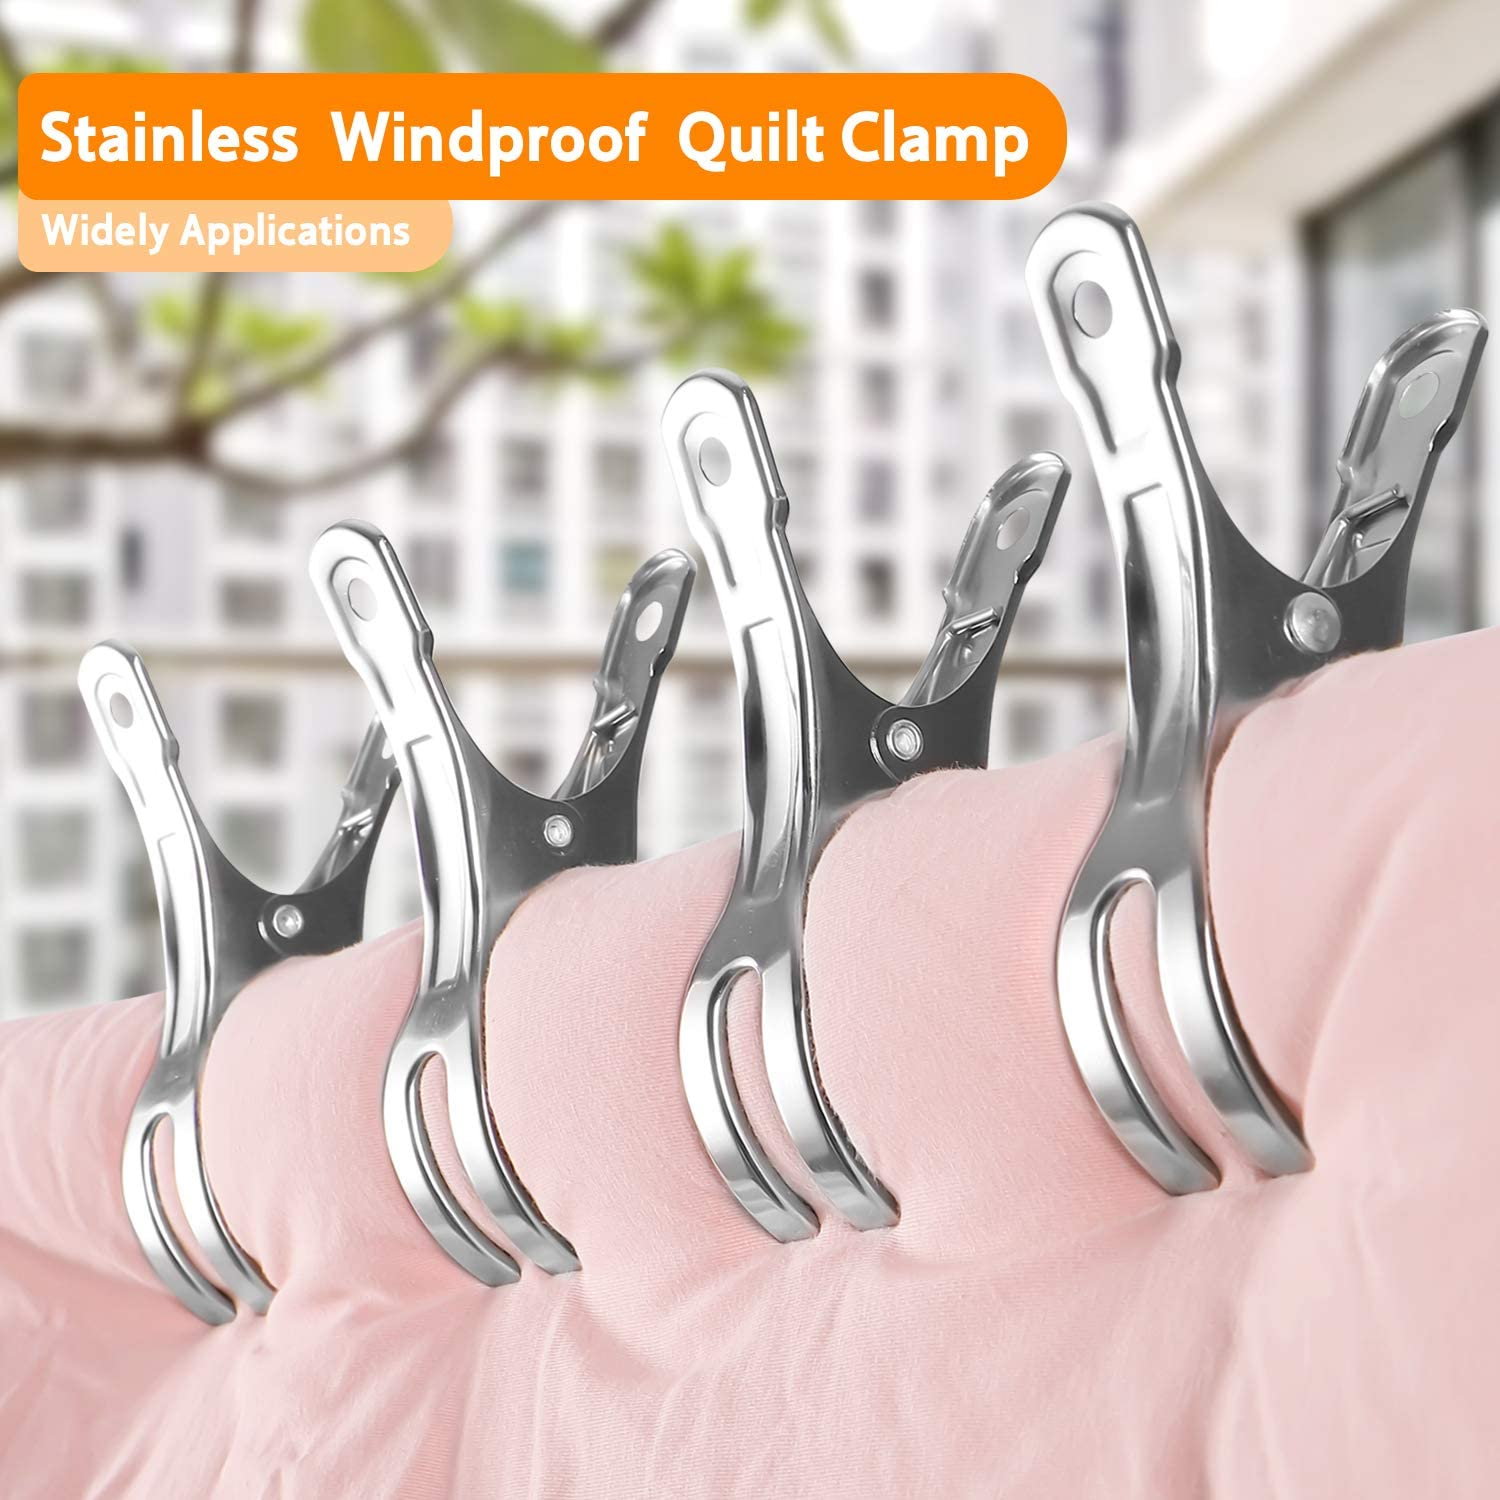 4.3 Inch Jumbo Size Clothes Pin Keep Your Towel//Quilt//Clothes from Blowing Away 12 Pack Heavy Duty Stainless Steel Quilt Clips Hersolm Beach Towel Clips Clamps